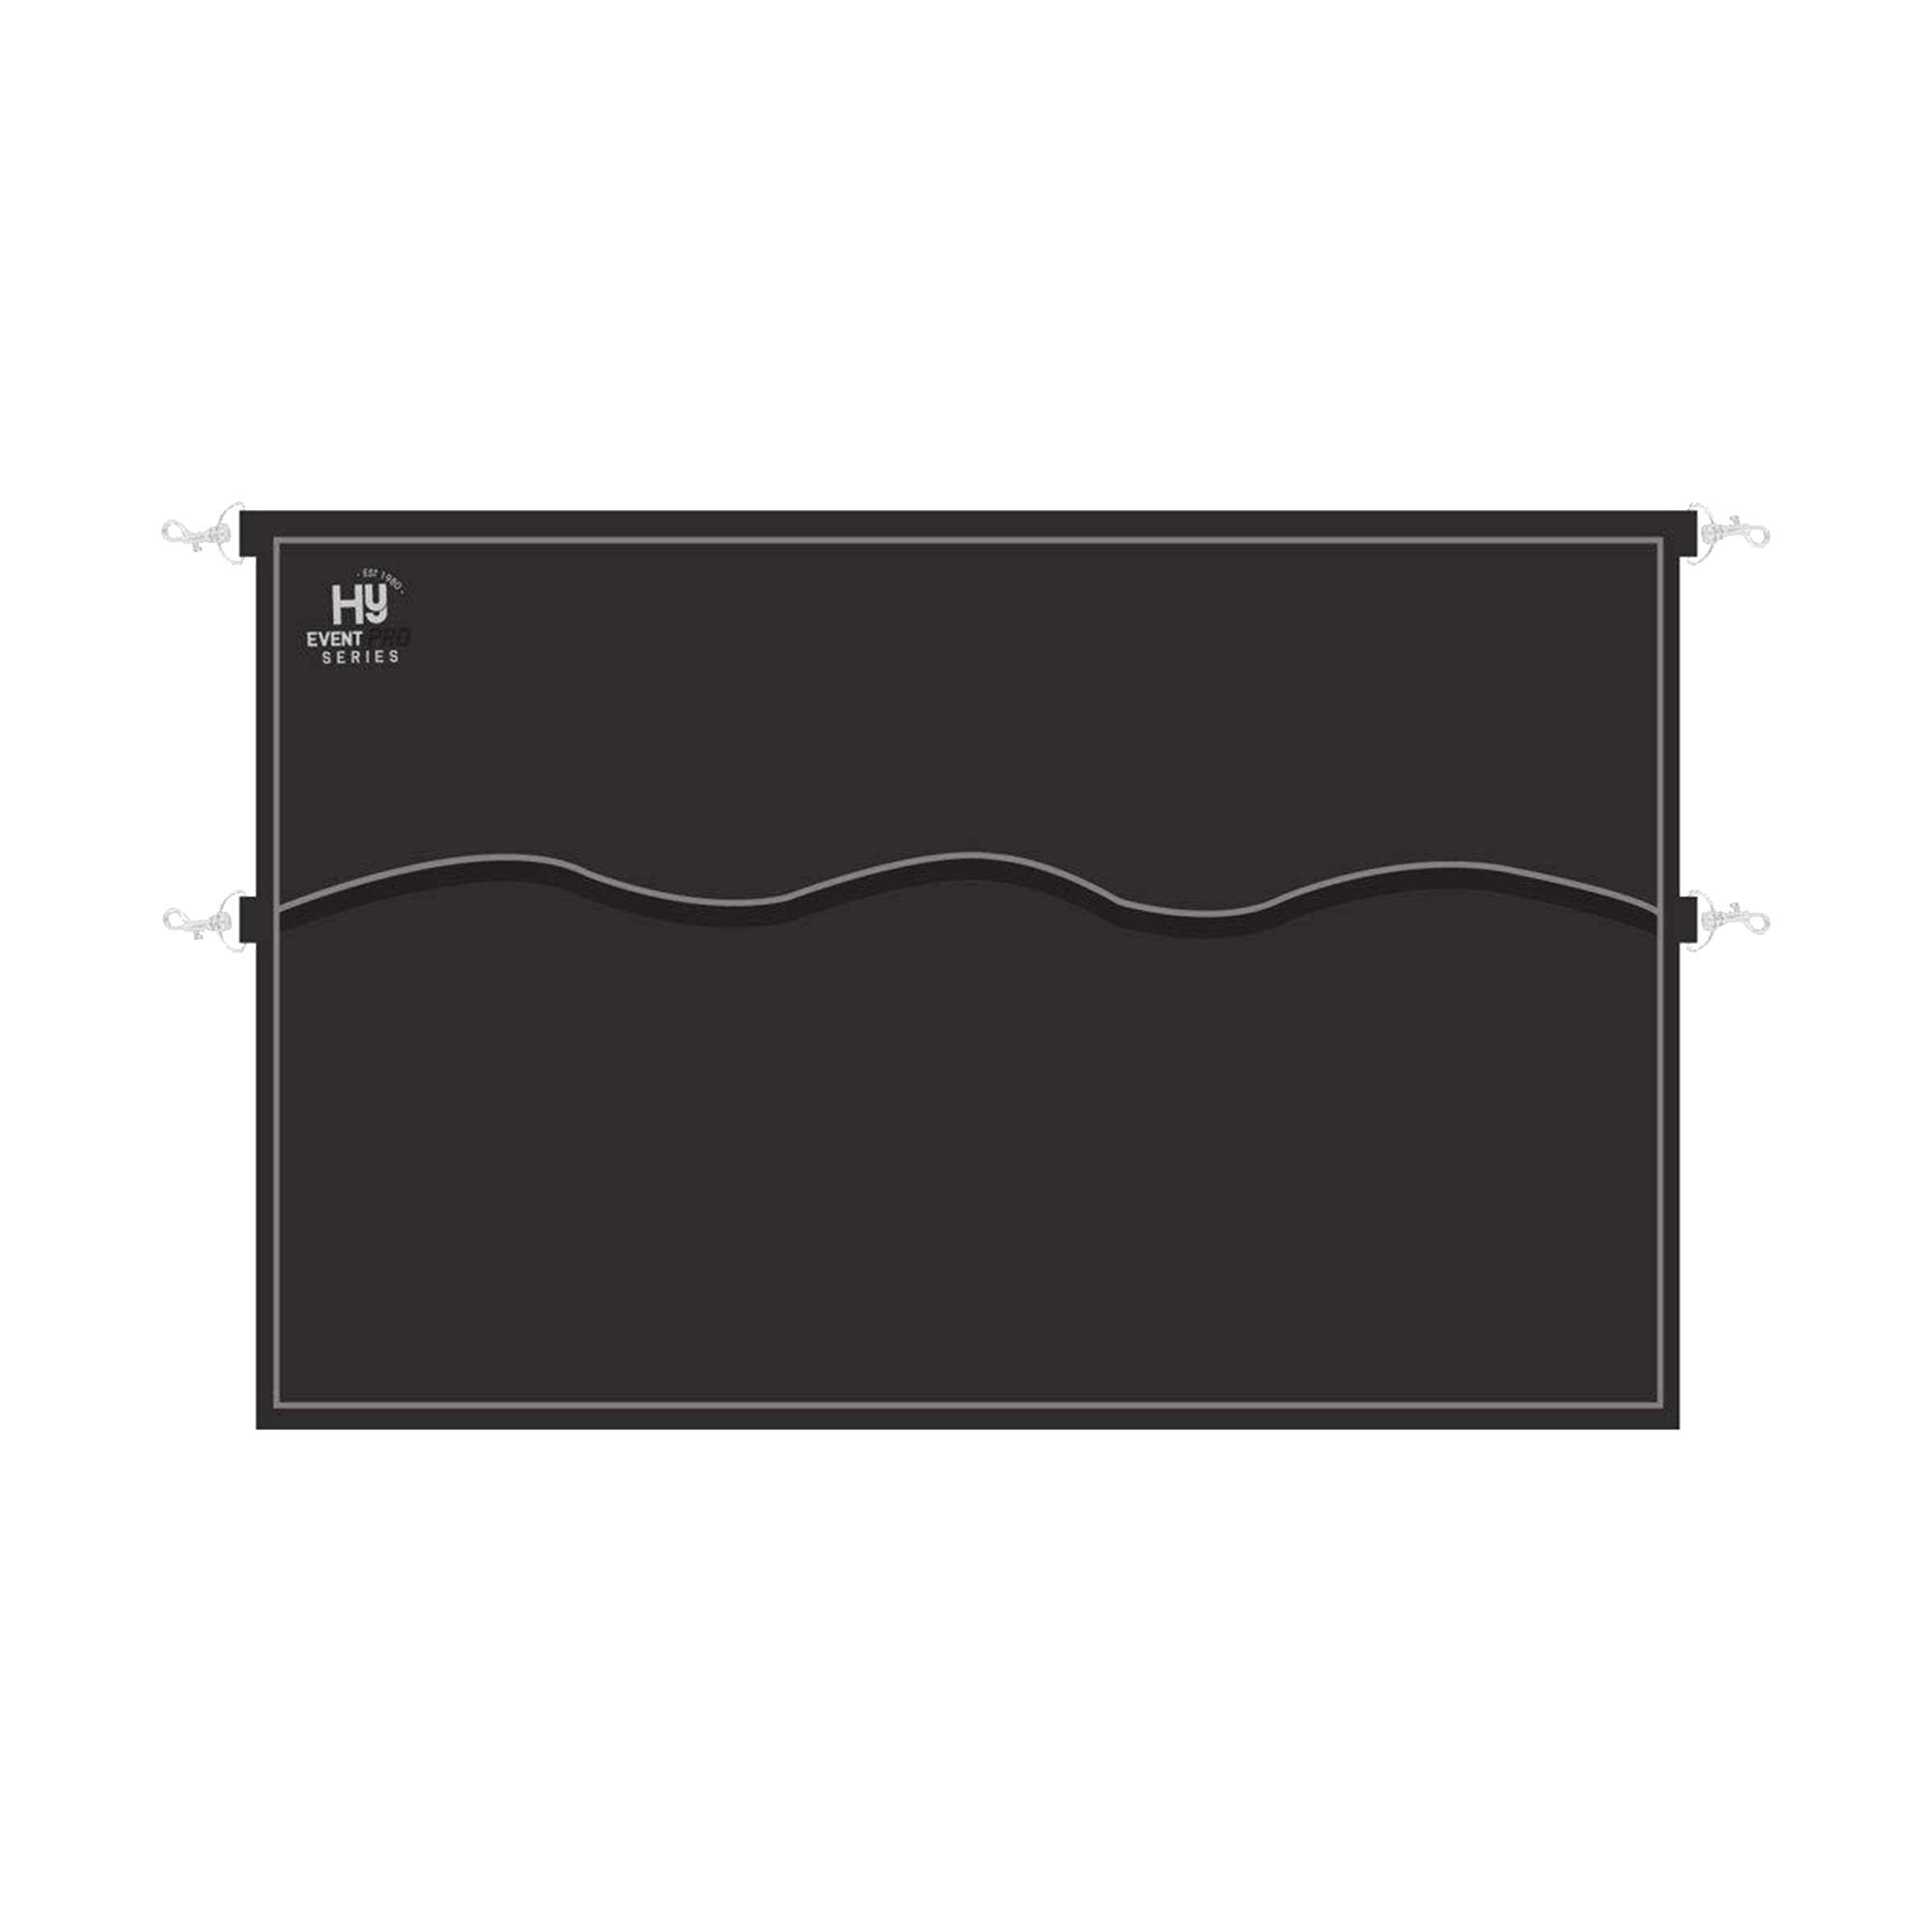 Hy Event Pro Series Stable Guard (23.5 x 37.5in) (Black/Charcoal) by Hy